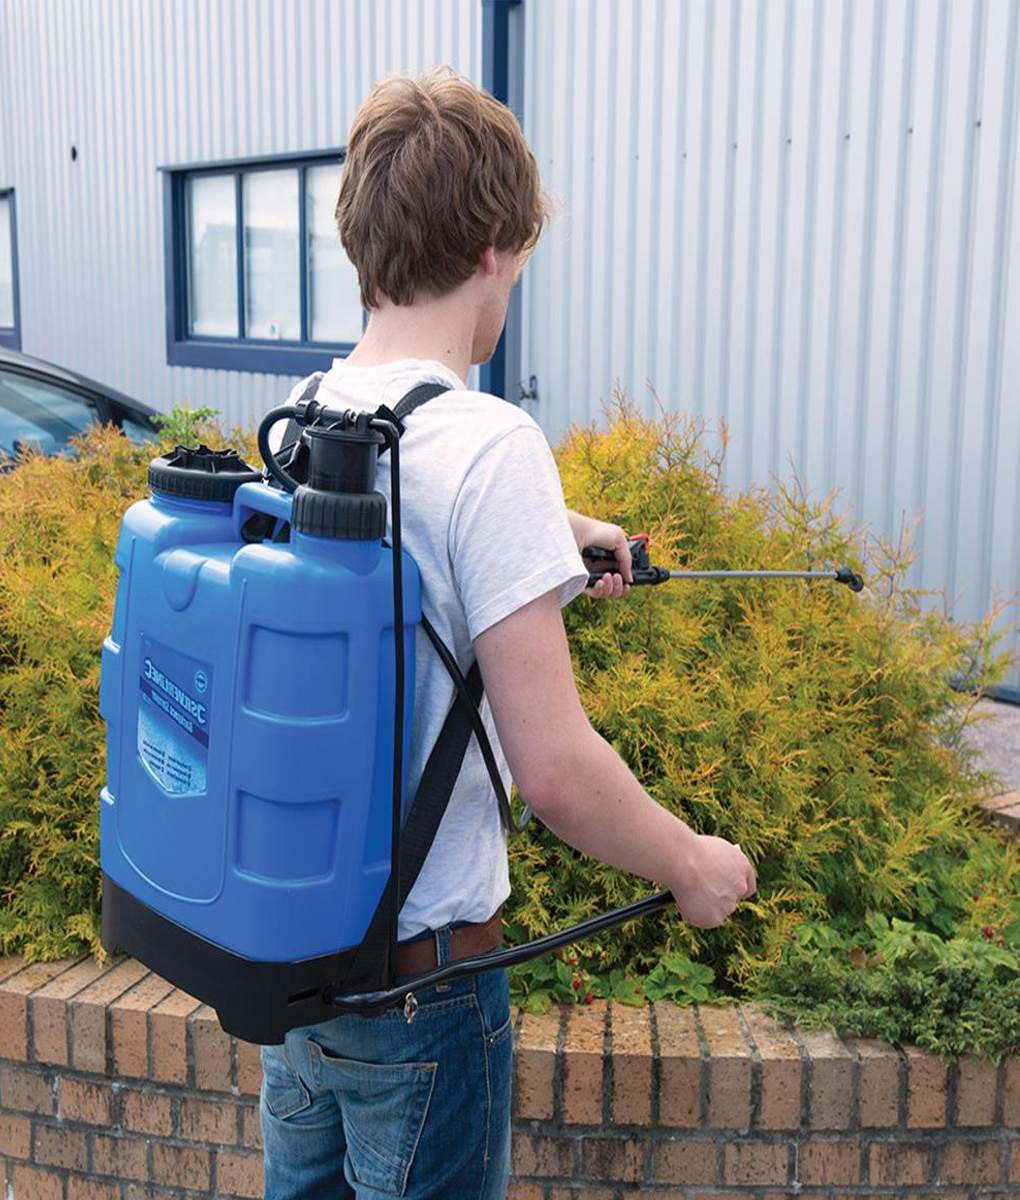 image - Top 5 Backpack Sprayers for Time-Saving Plant Treatment